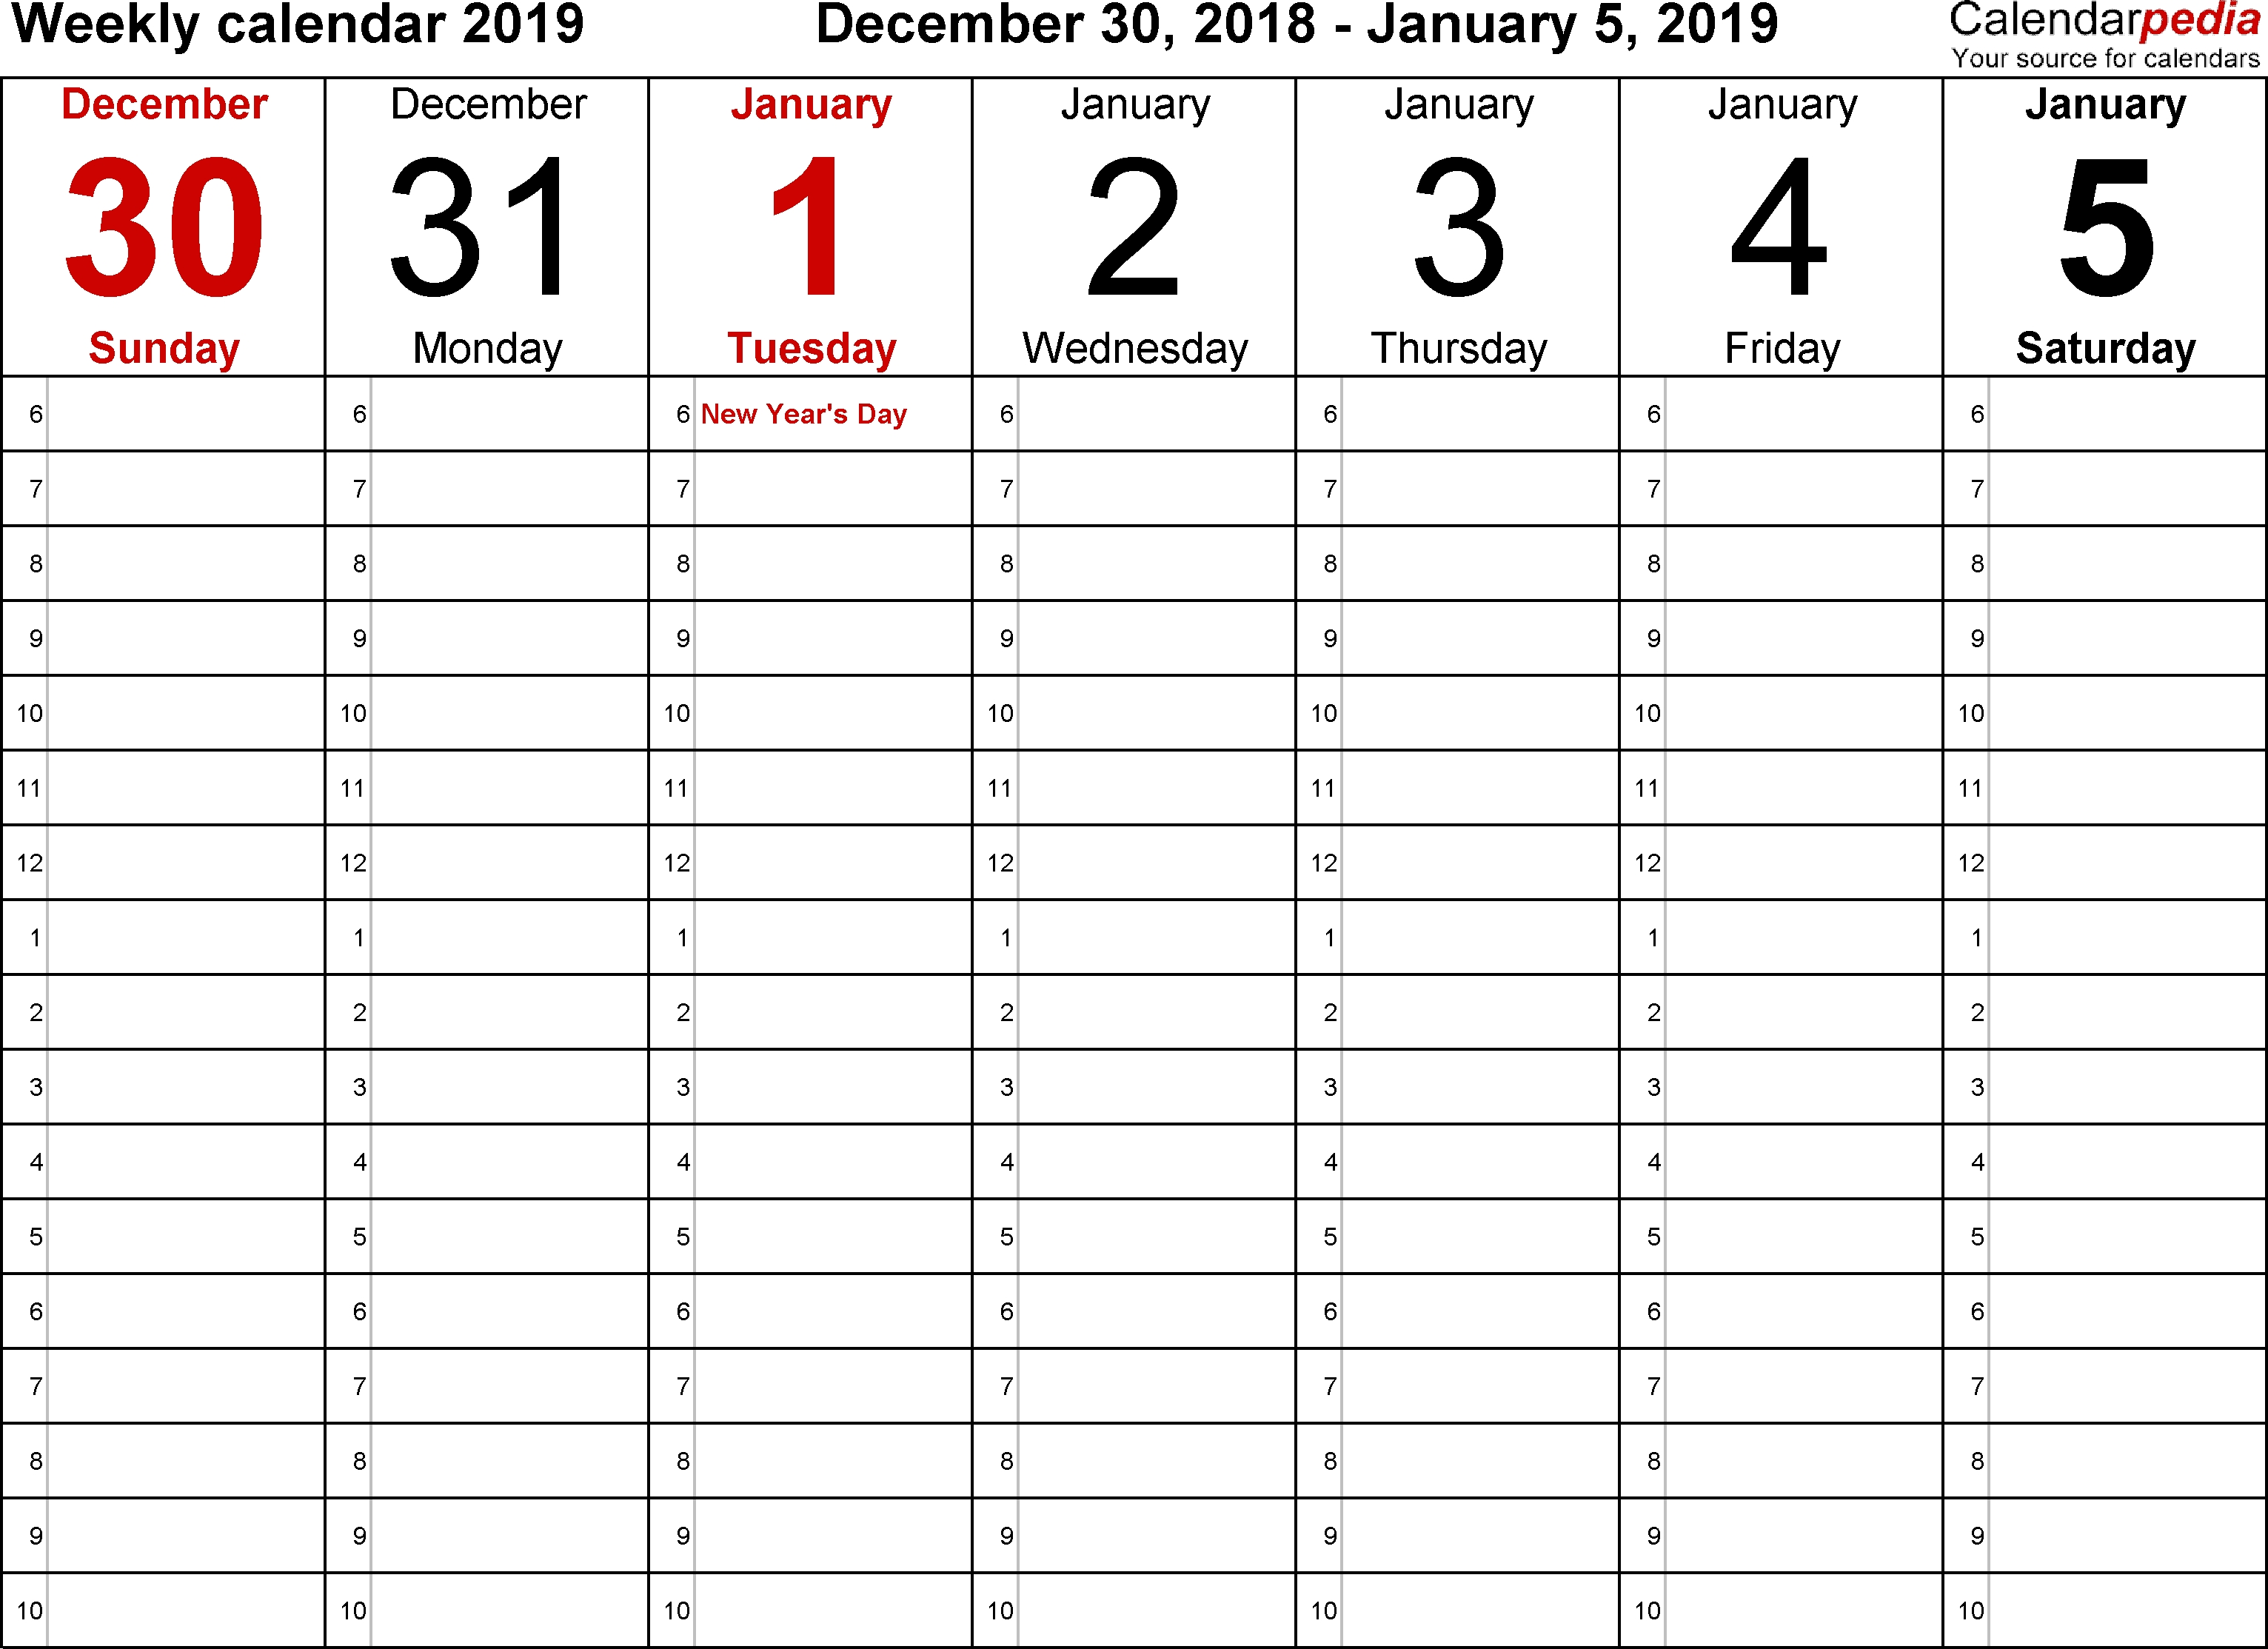 Weekly Calendar 2019 For Word - 12 Free Printable Templates-Calendar Template No Weekends